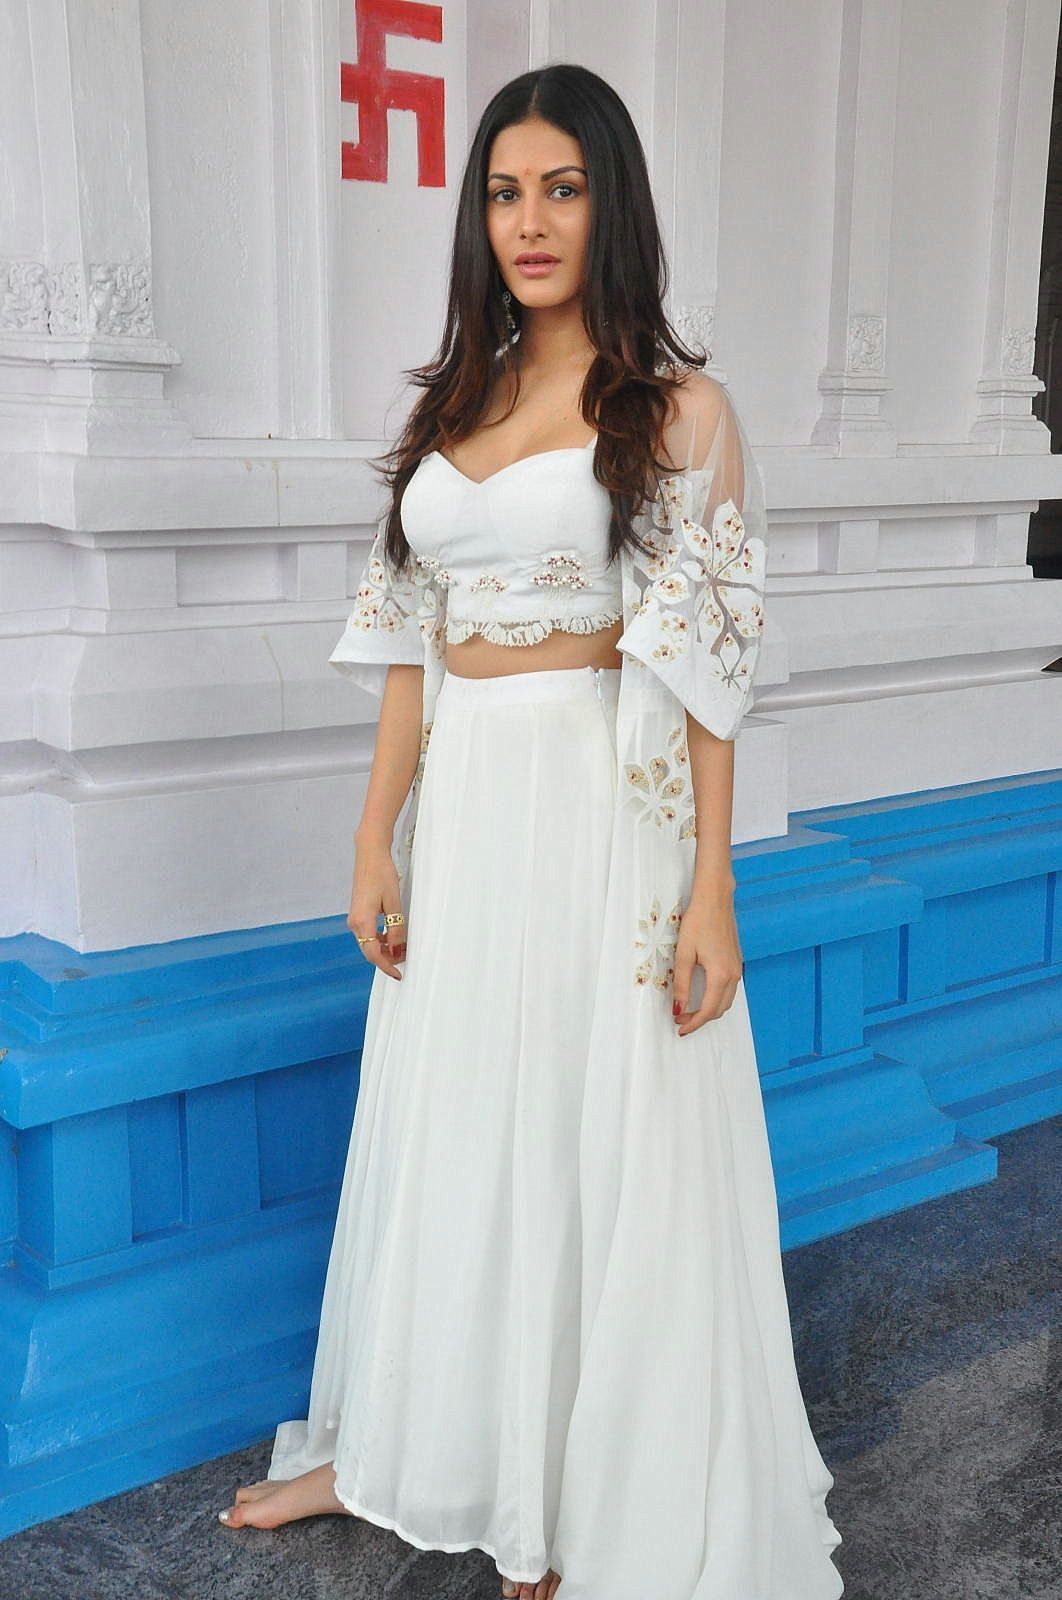 Amyra Dastur Looks Super Hot In A Revealing White Dress At Anandi Indira Production Llp No 1 Opening Event Hyderabad Click Here To See More